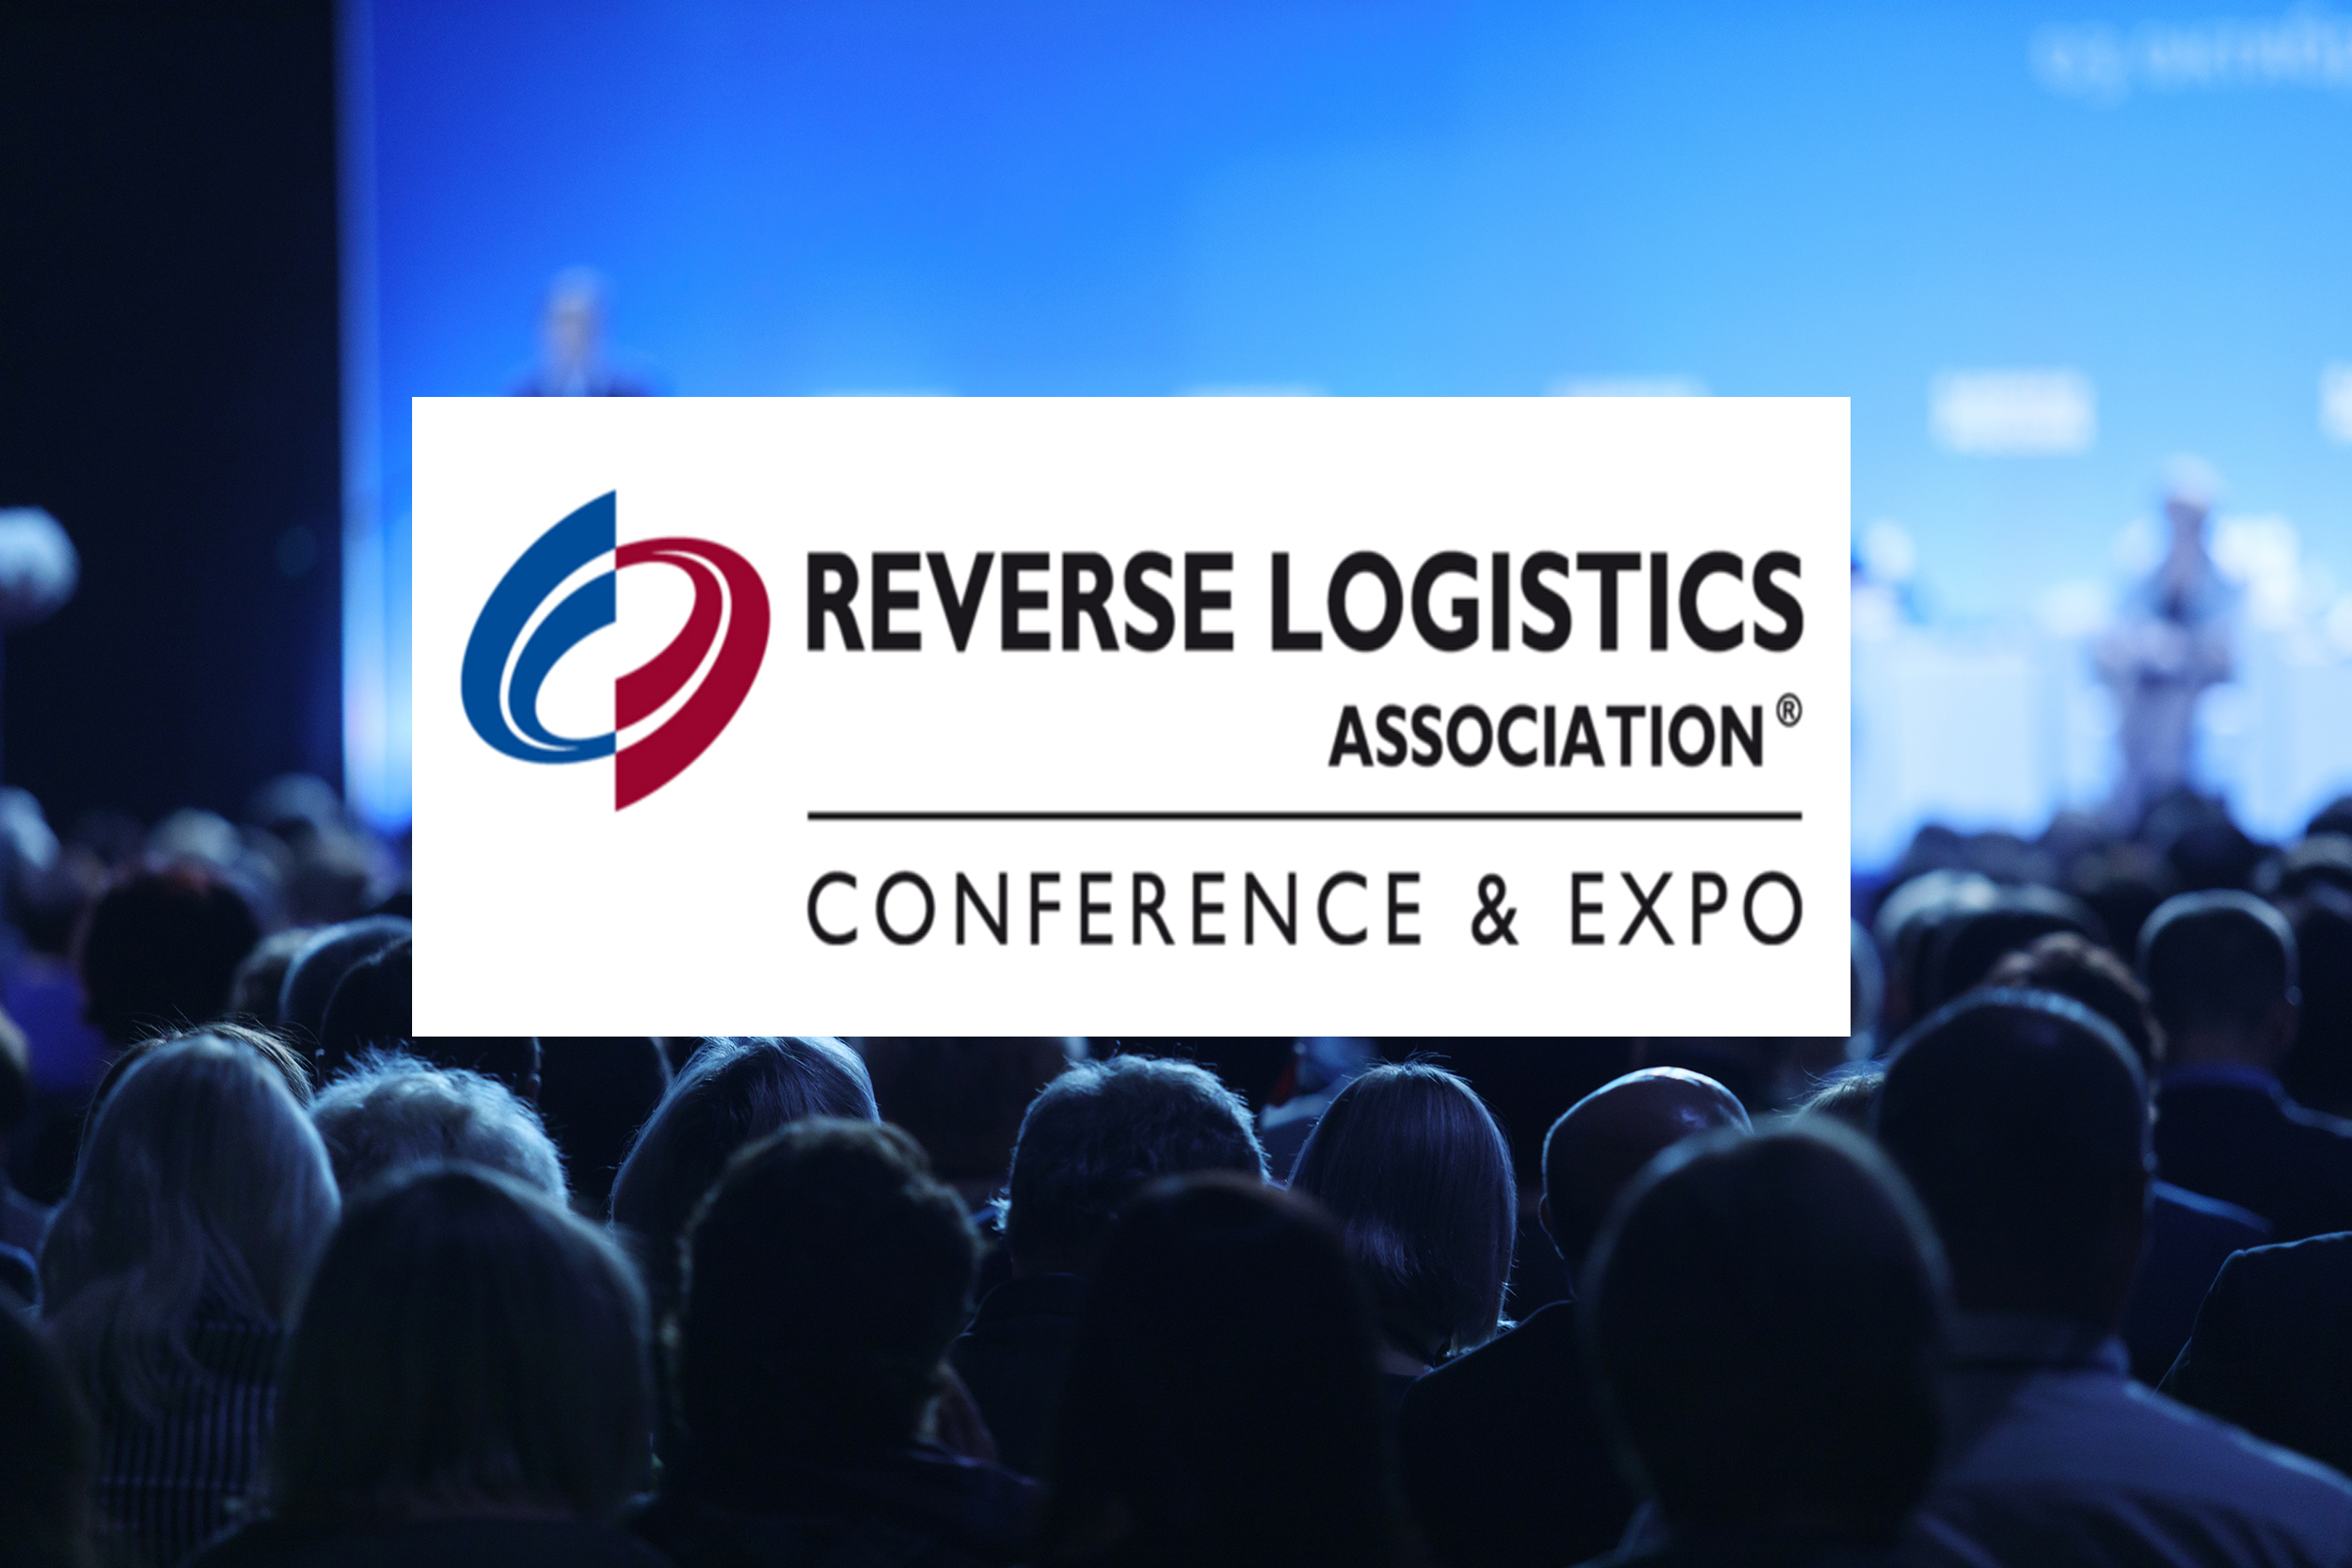 Join Contec at the Reverse Logistics Association Conference & Expo 2020, in Las Vegas!